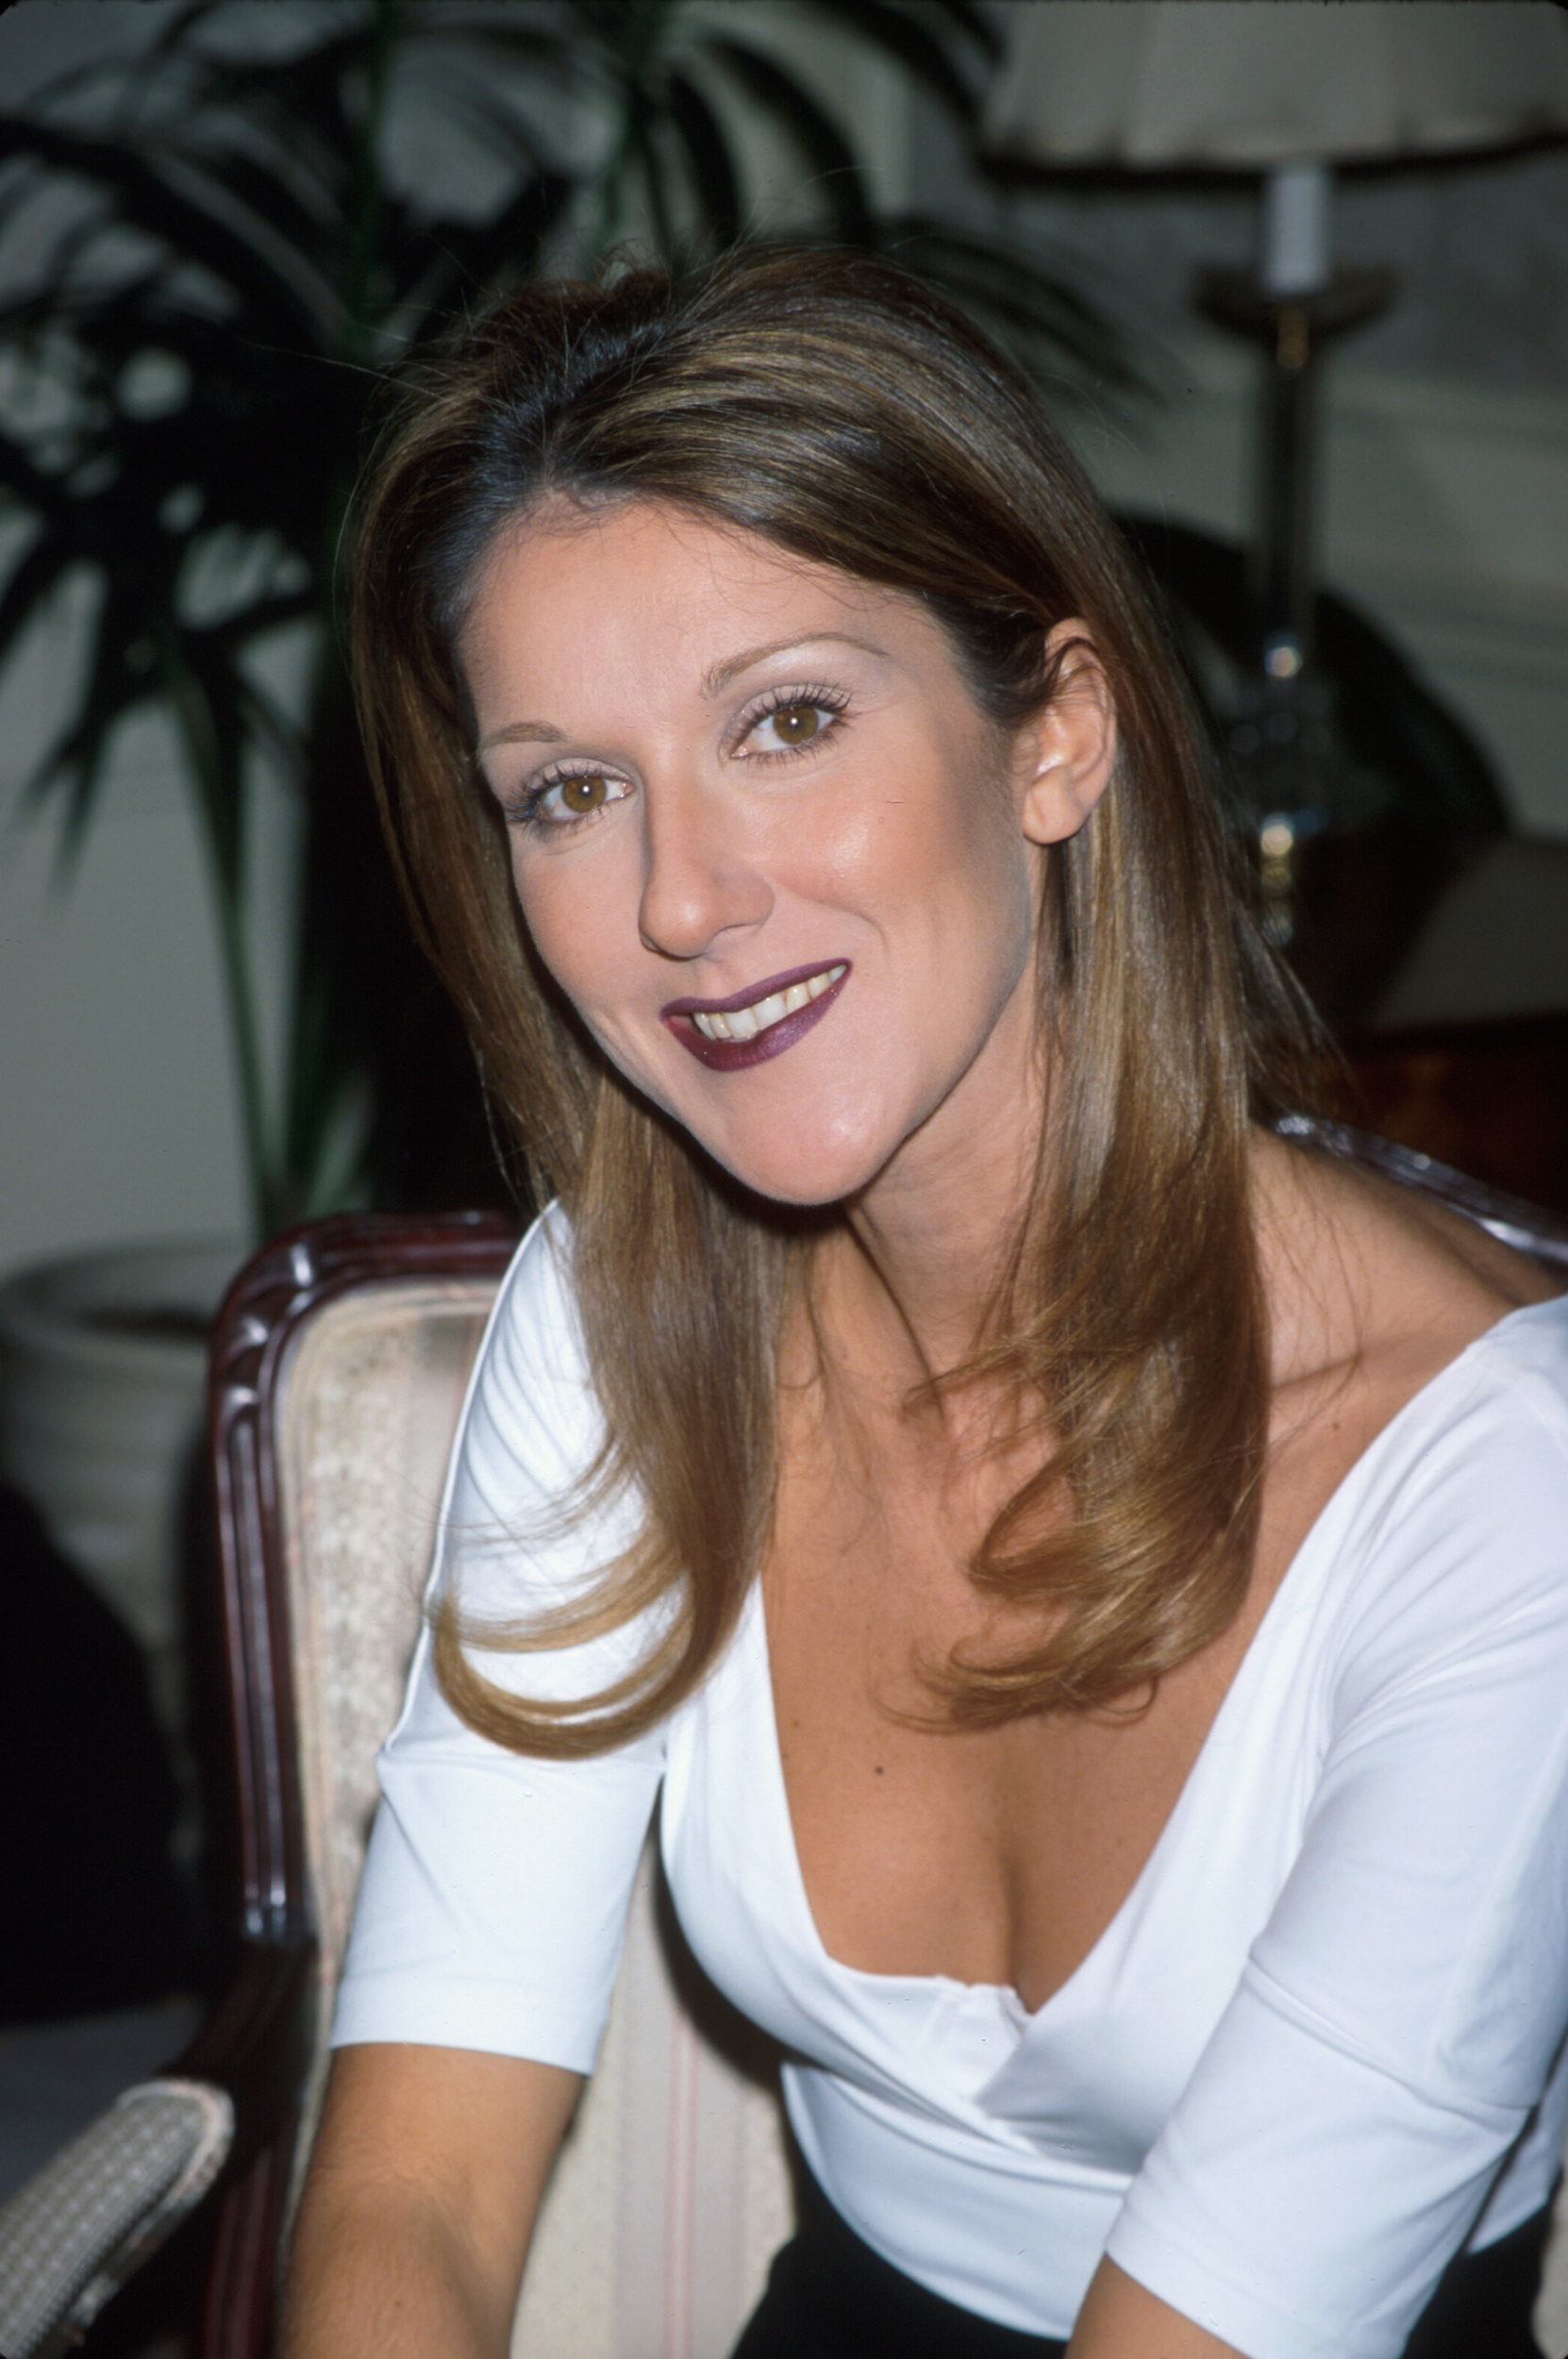 Singer Celine Dion.(Photo by Dave Allocca/DMI/The LIFE Picture Collection/Getty Images)